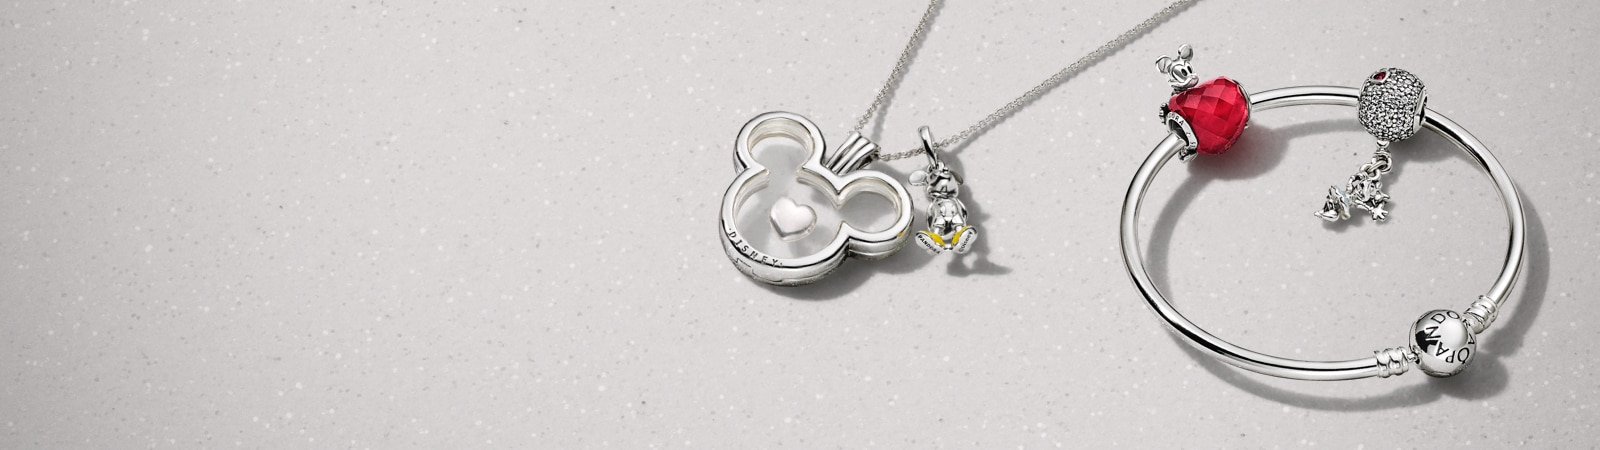 Shop for the Disney jewellery collection at Pandora